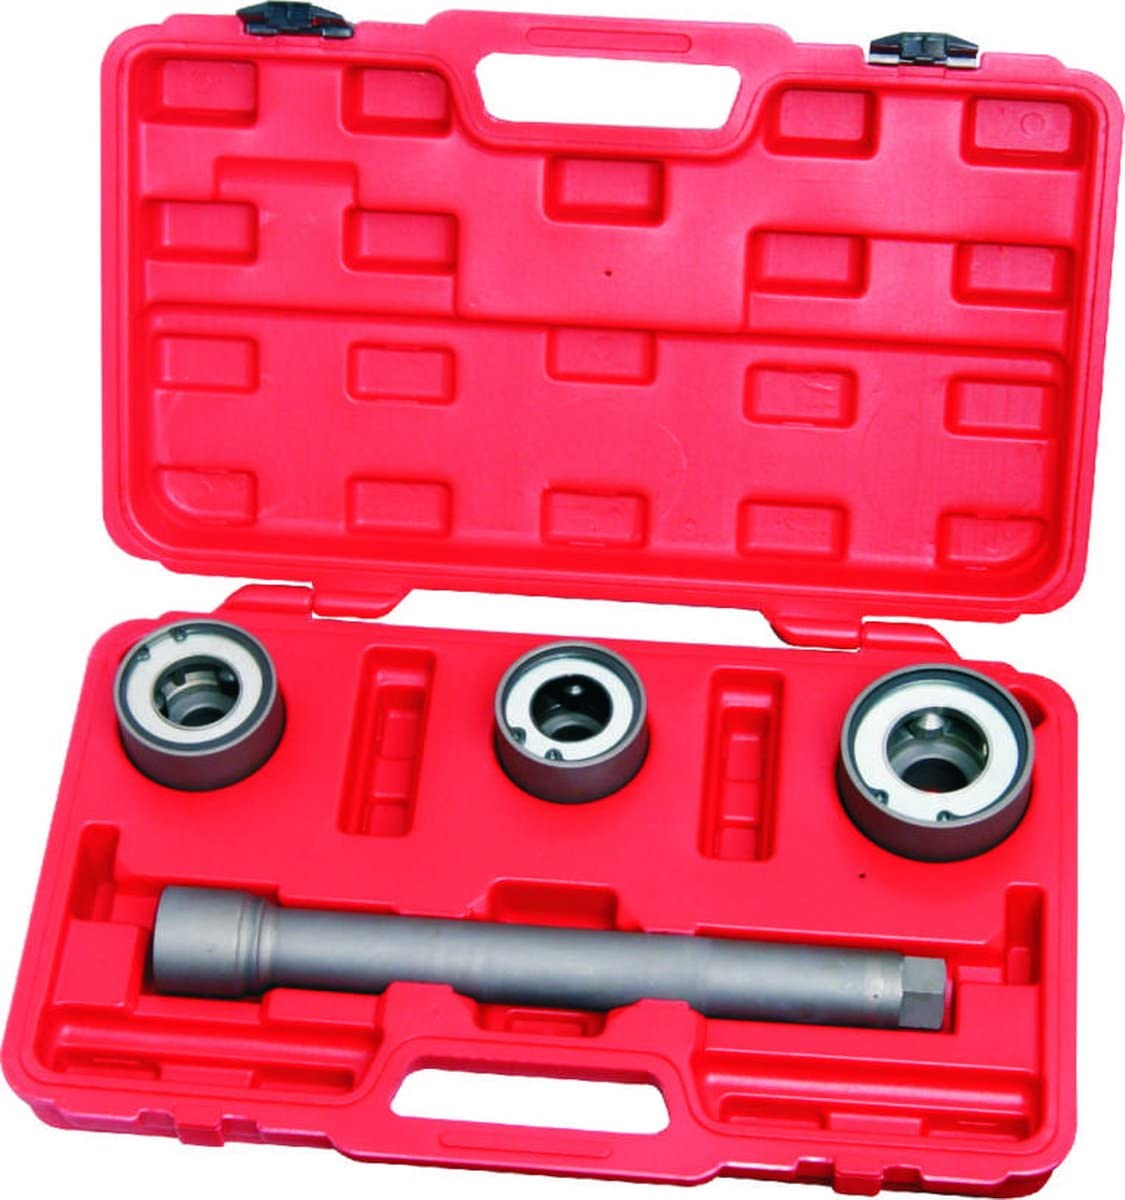 Inner Track Rod Tool 4pc Steering Rack Knuckle Tool Tie End Axial Joint Remova